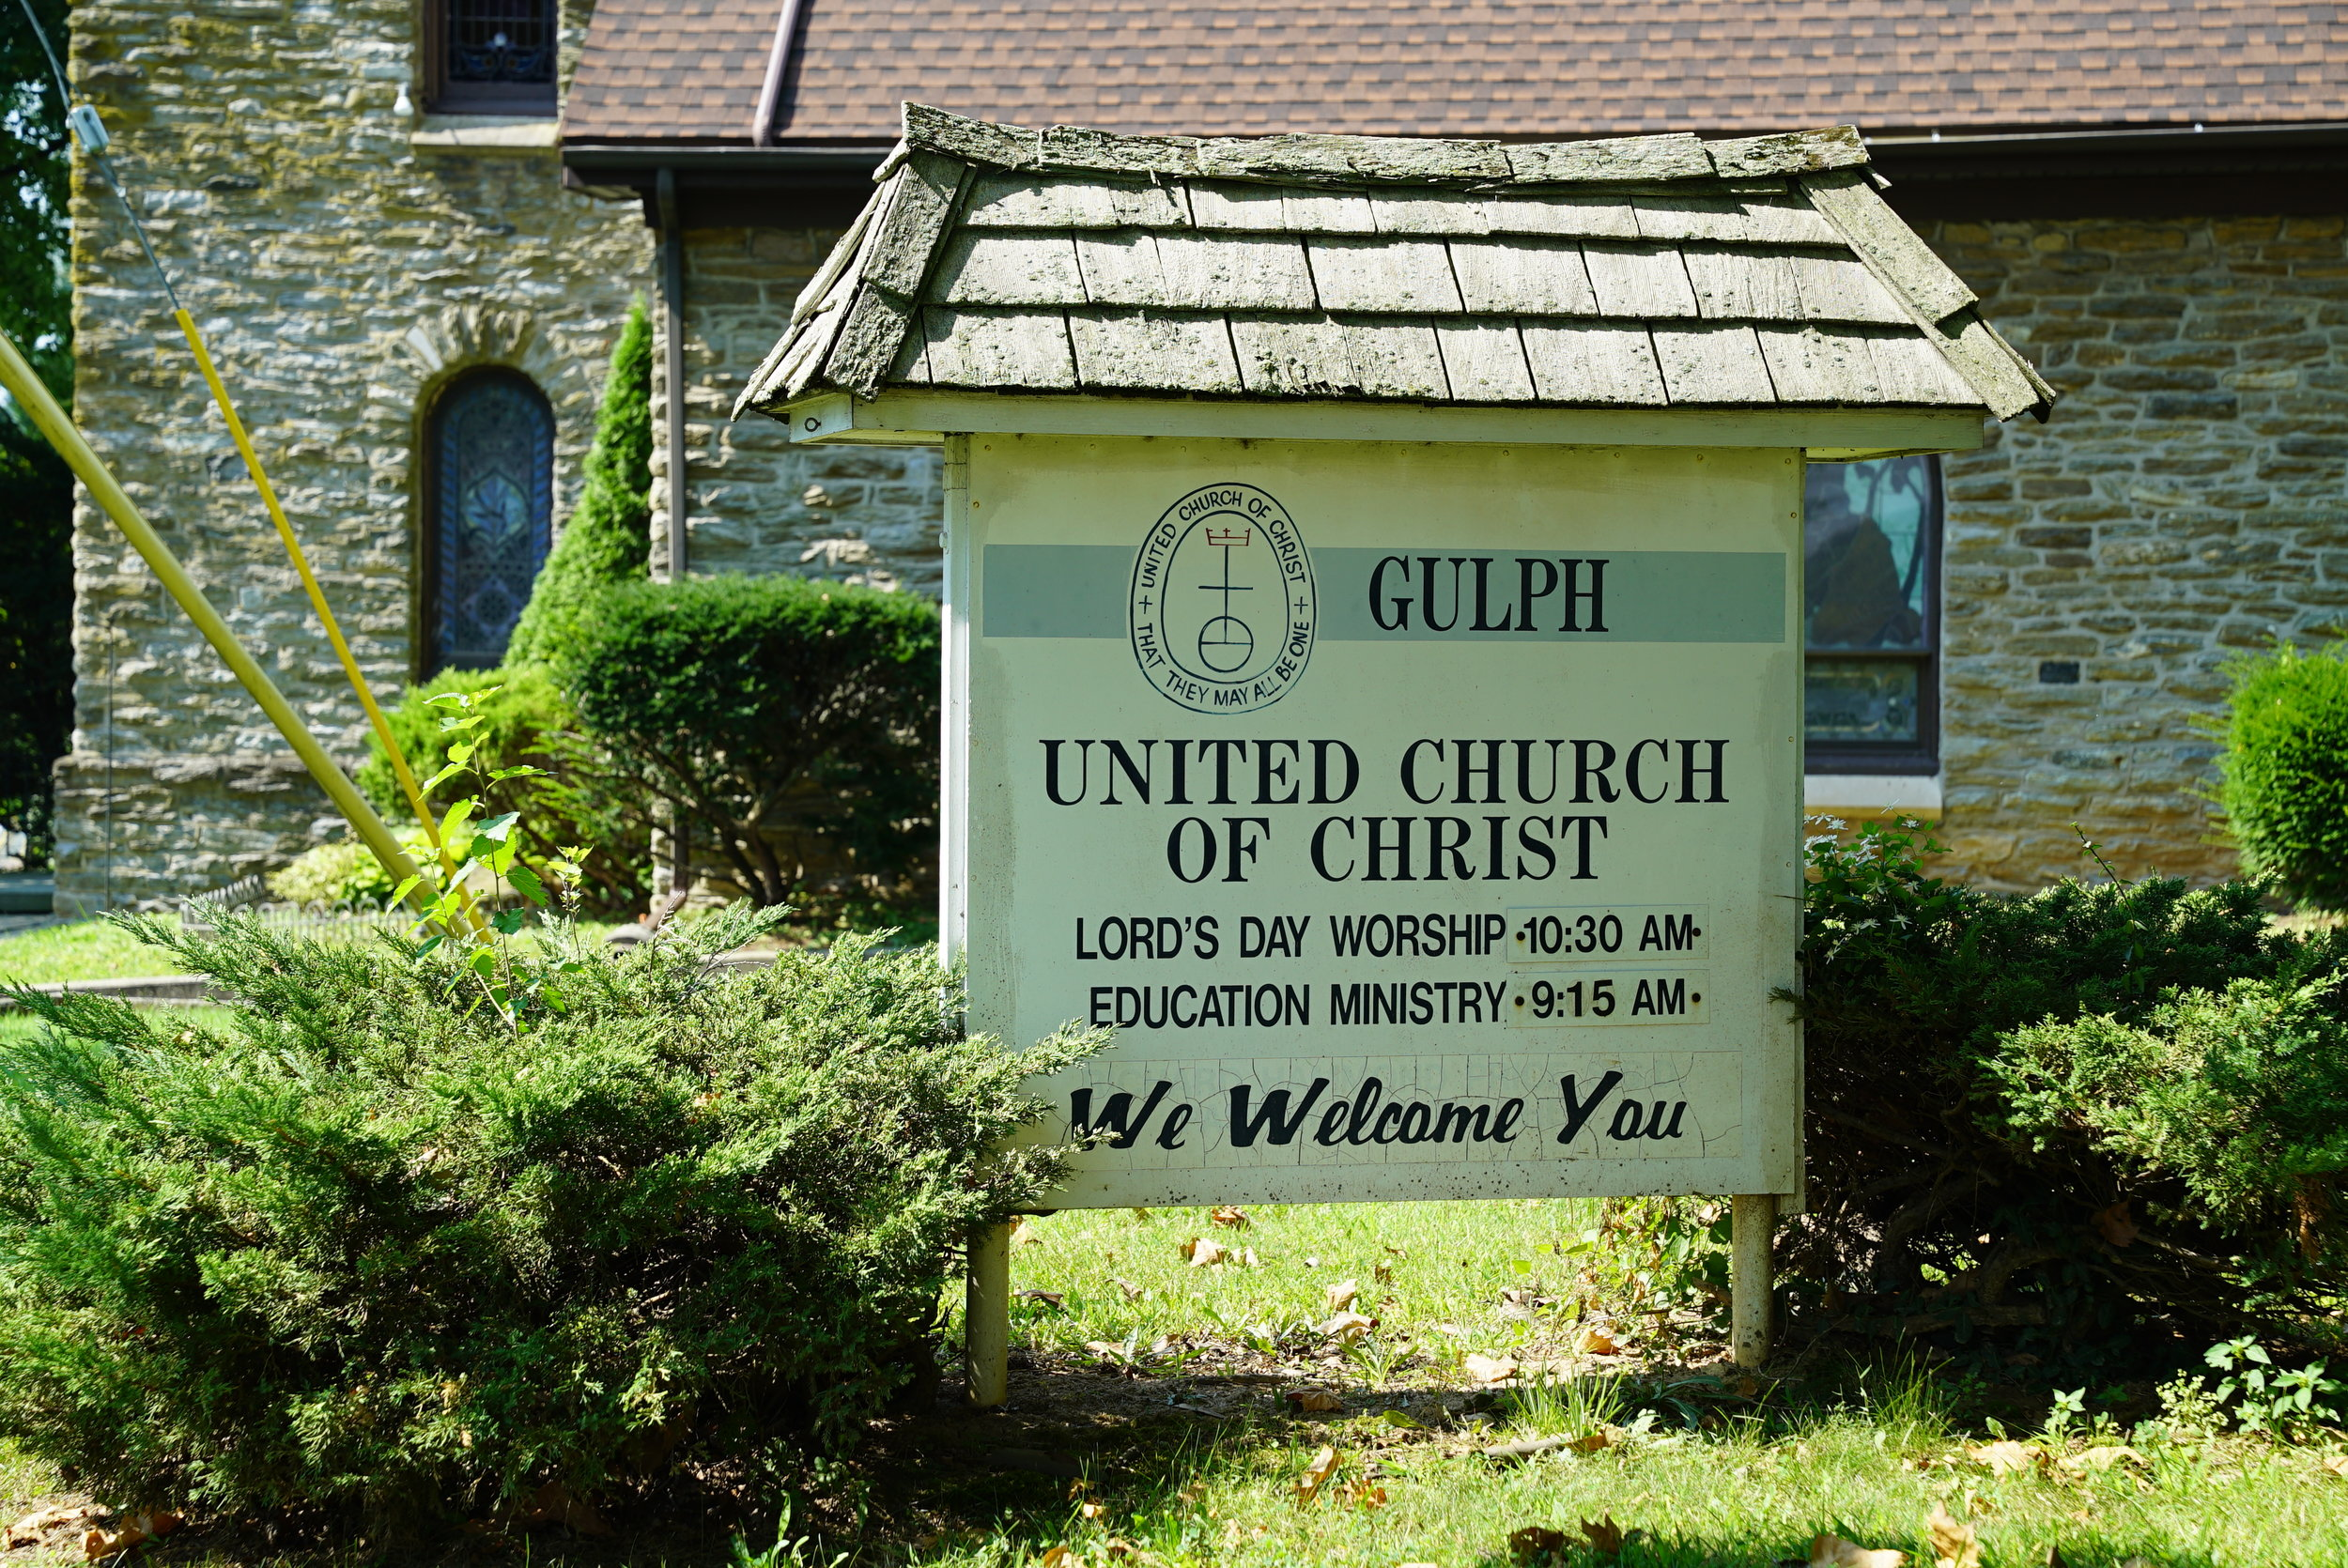 At the entrance to Gulp United Church of Christ Cemetery. West Conshohocken, Pennsylvania.